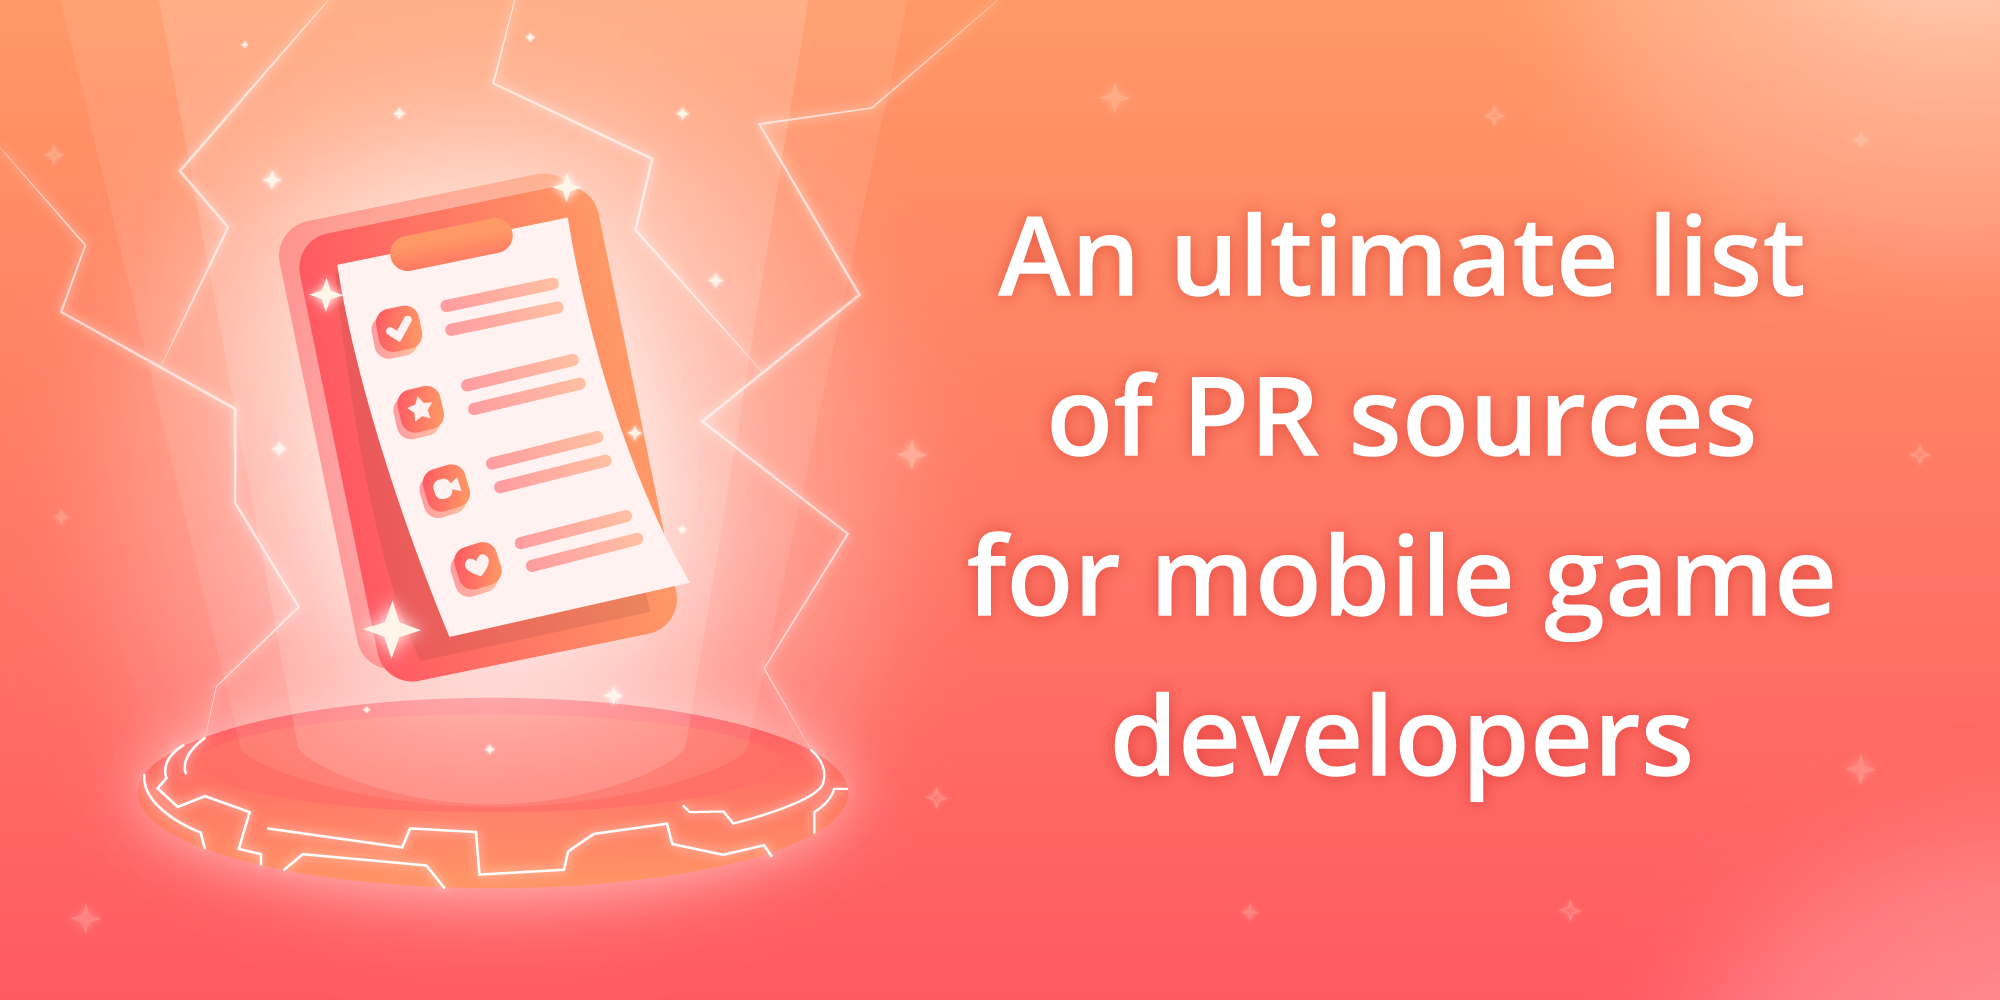 An ultimate list of the PR sources for mobile game developers